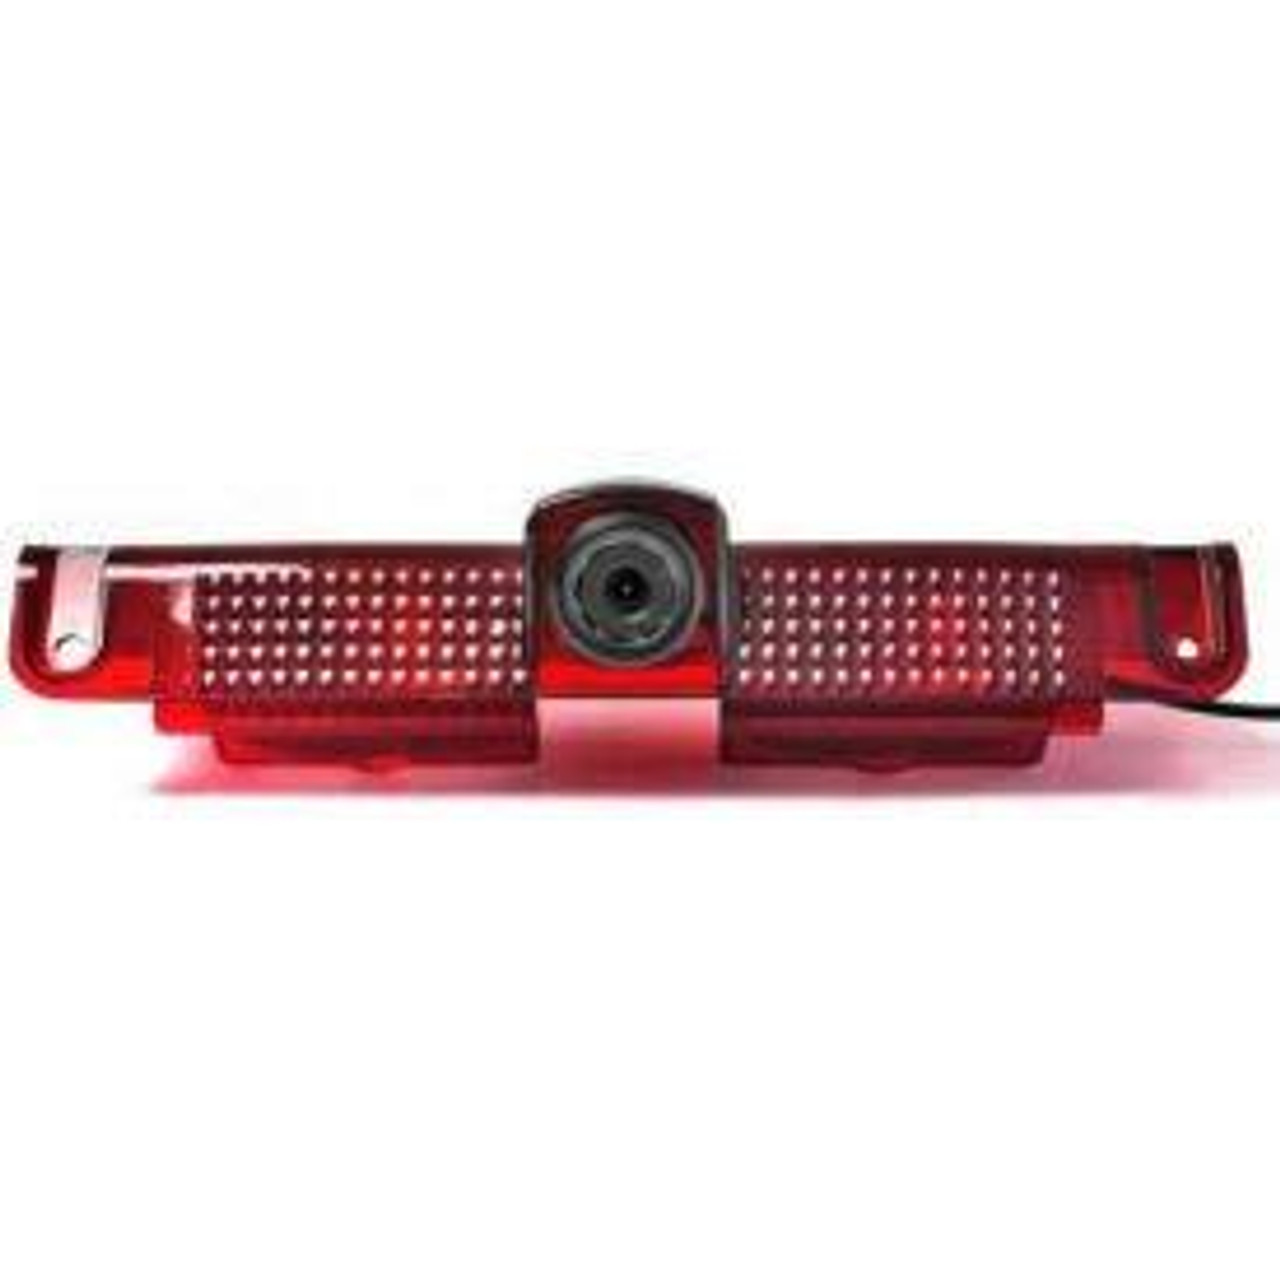 Rear View Safety Chevy Express Third Brake Light Camera RVS-913 (RVS-913)